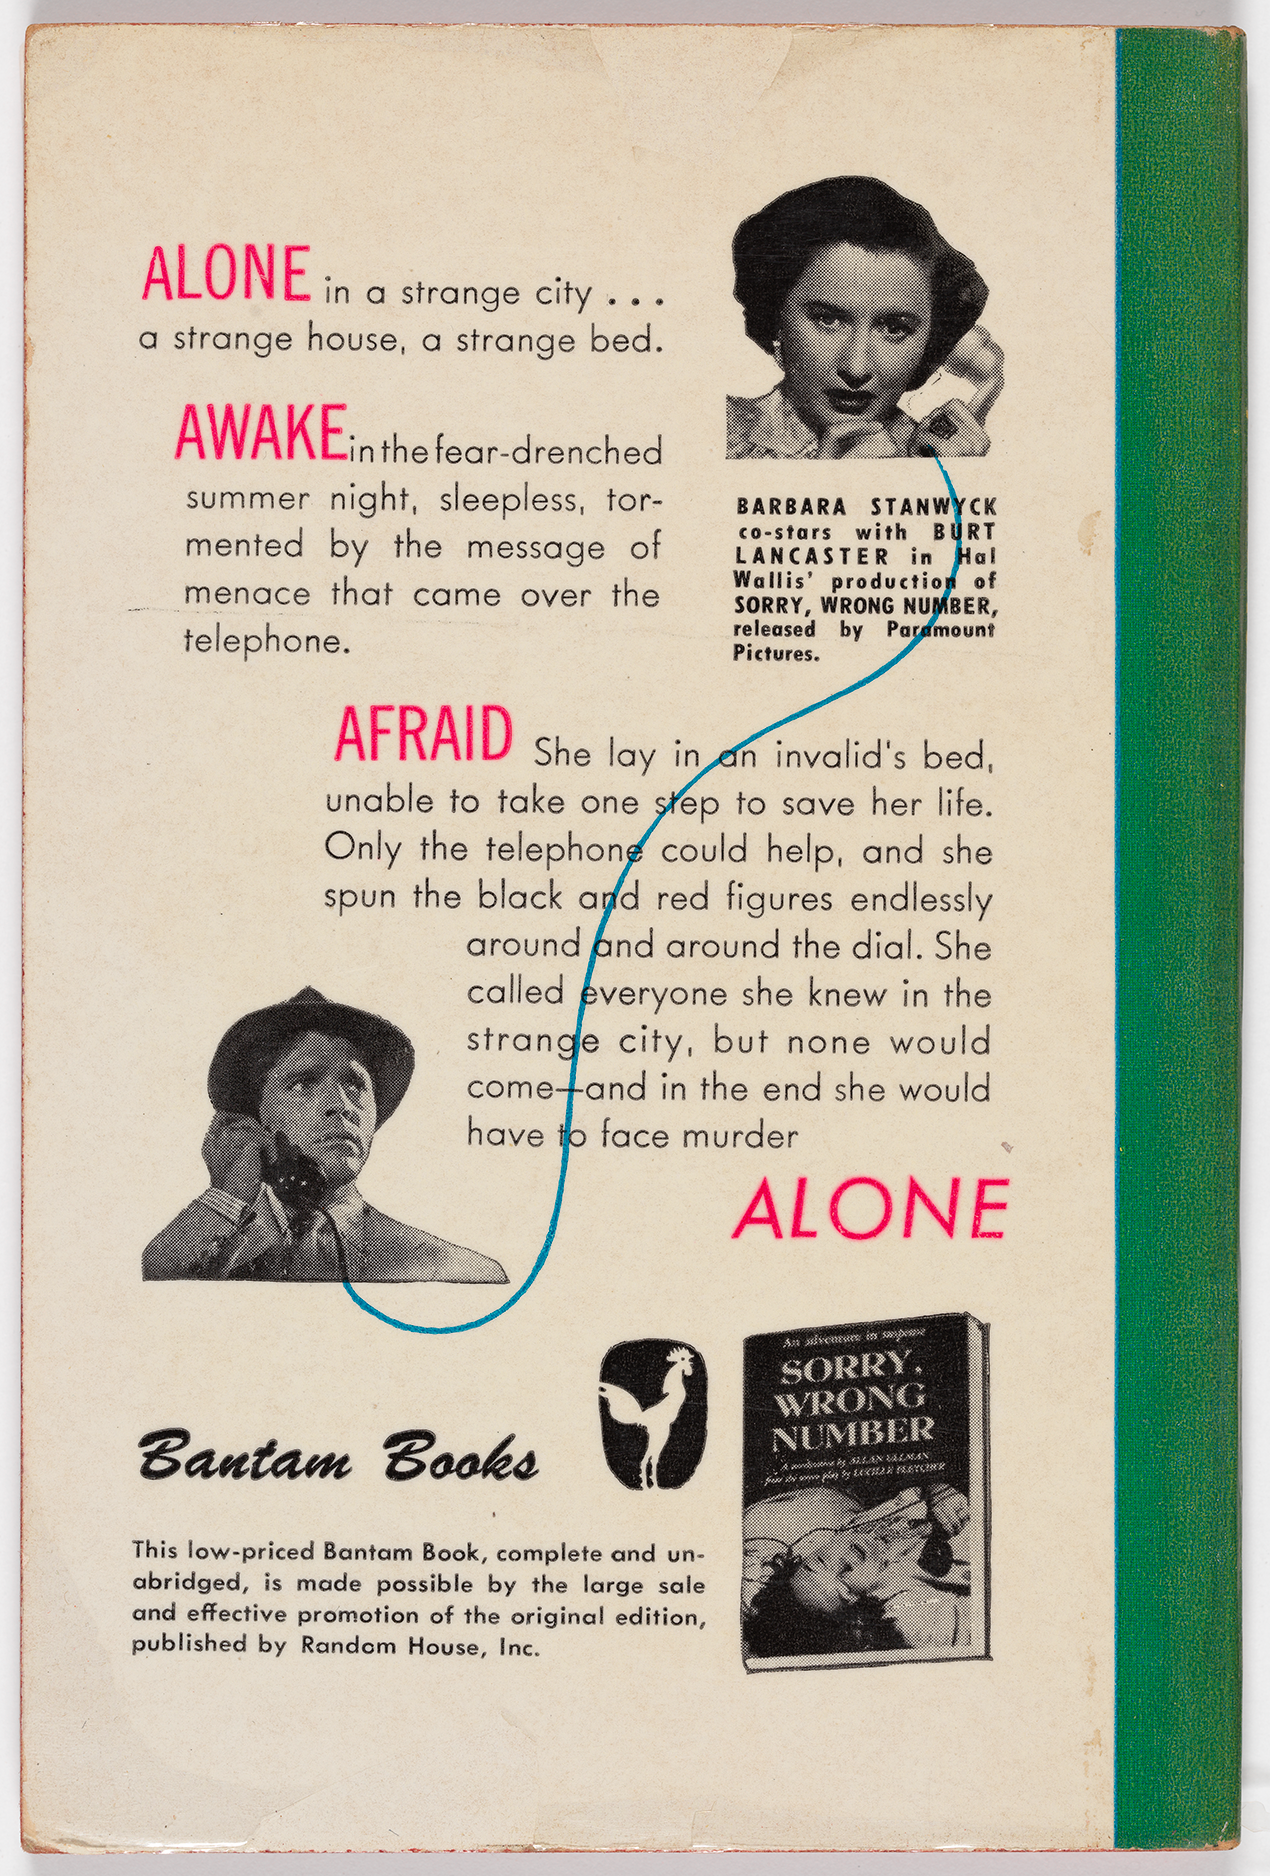 "Photos of Barbara Stanwyk and Burt Lancaster on the phone are connected by a blue wire between the two. The text features the words ""ALONE,"" ""AWAKE,"" ""AFRAID,"" and ""ALONE"" in pink, with longer descriptions for each section. In addition to the name and logo for Bantam Books, there is a photo of the original Random House edition of the book."